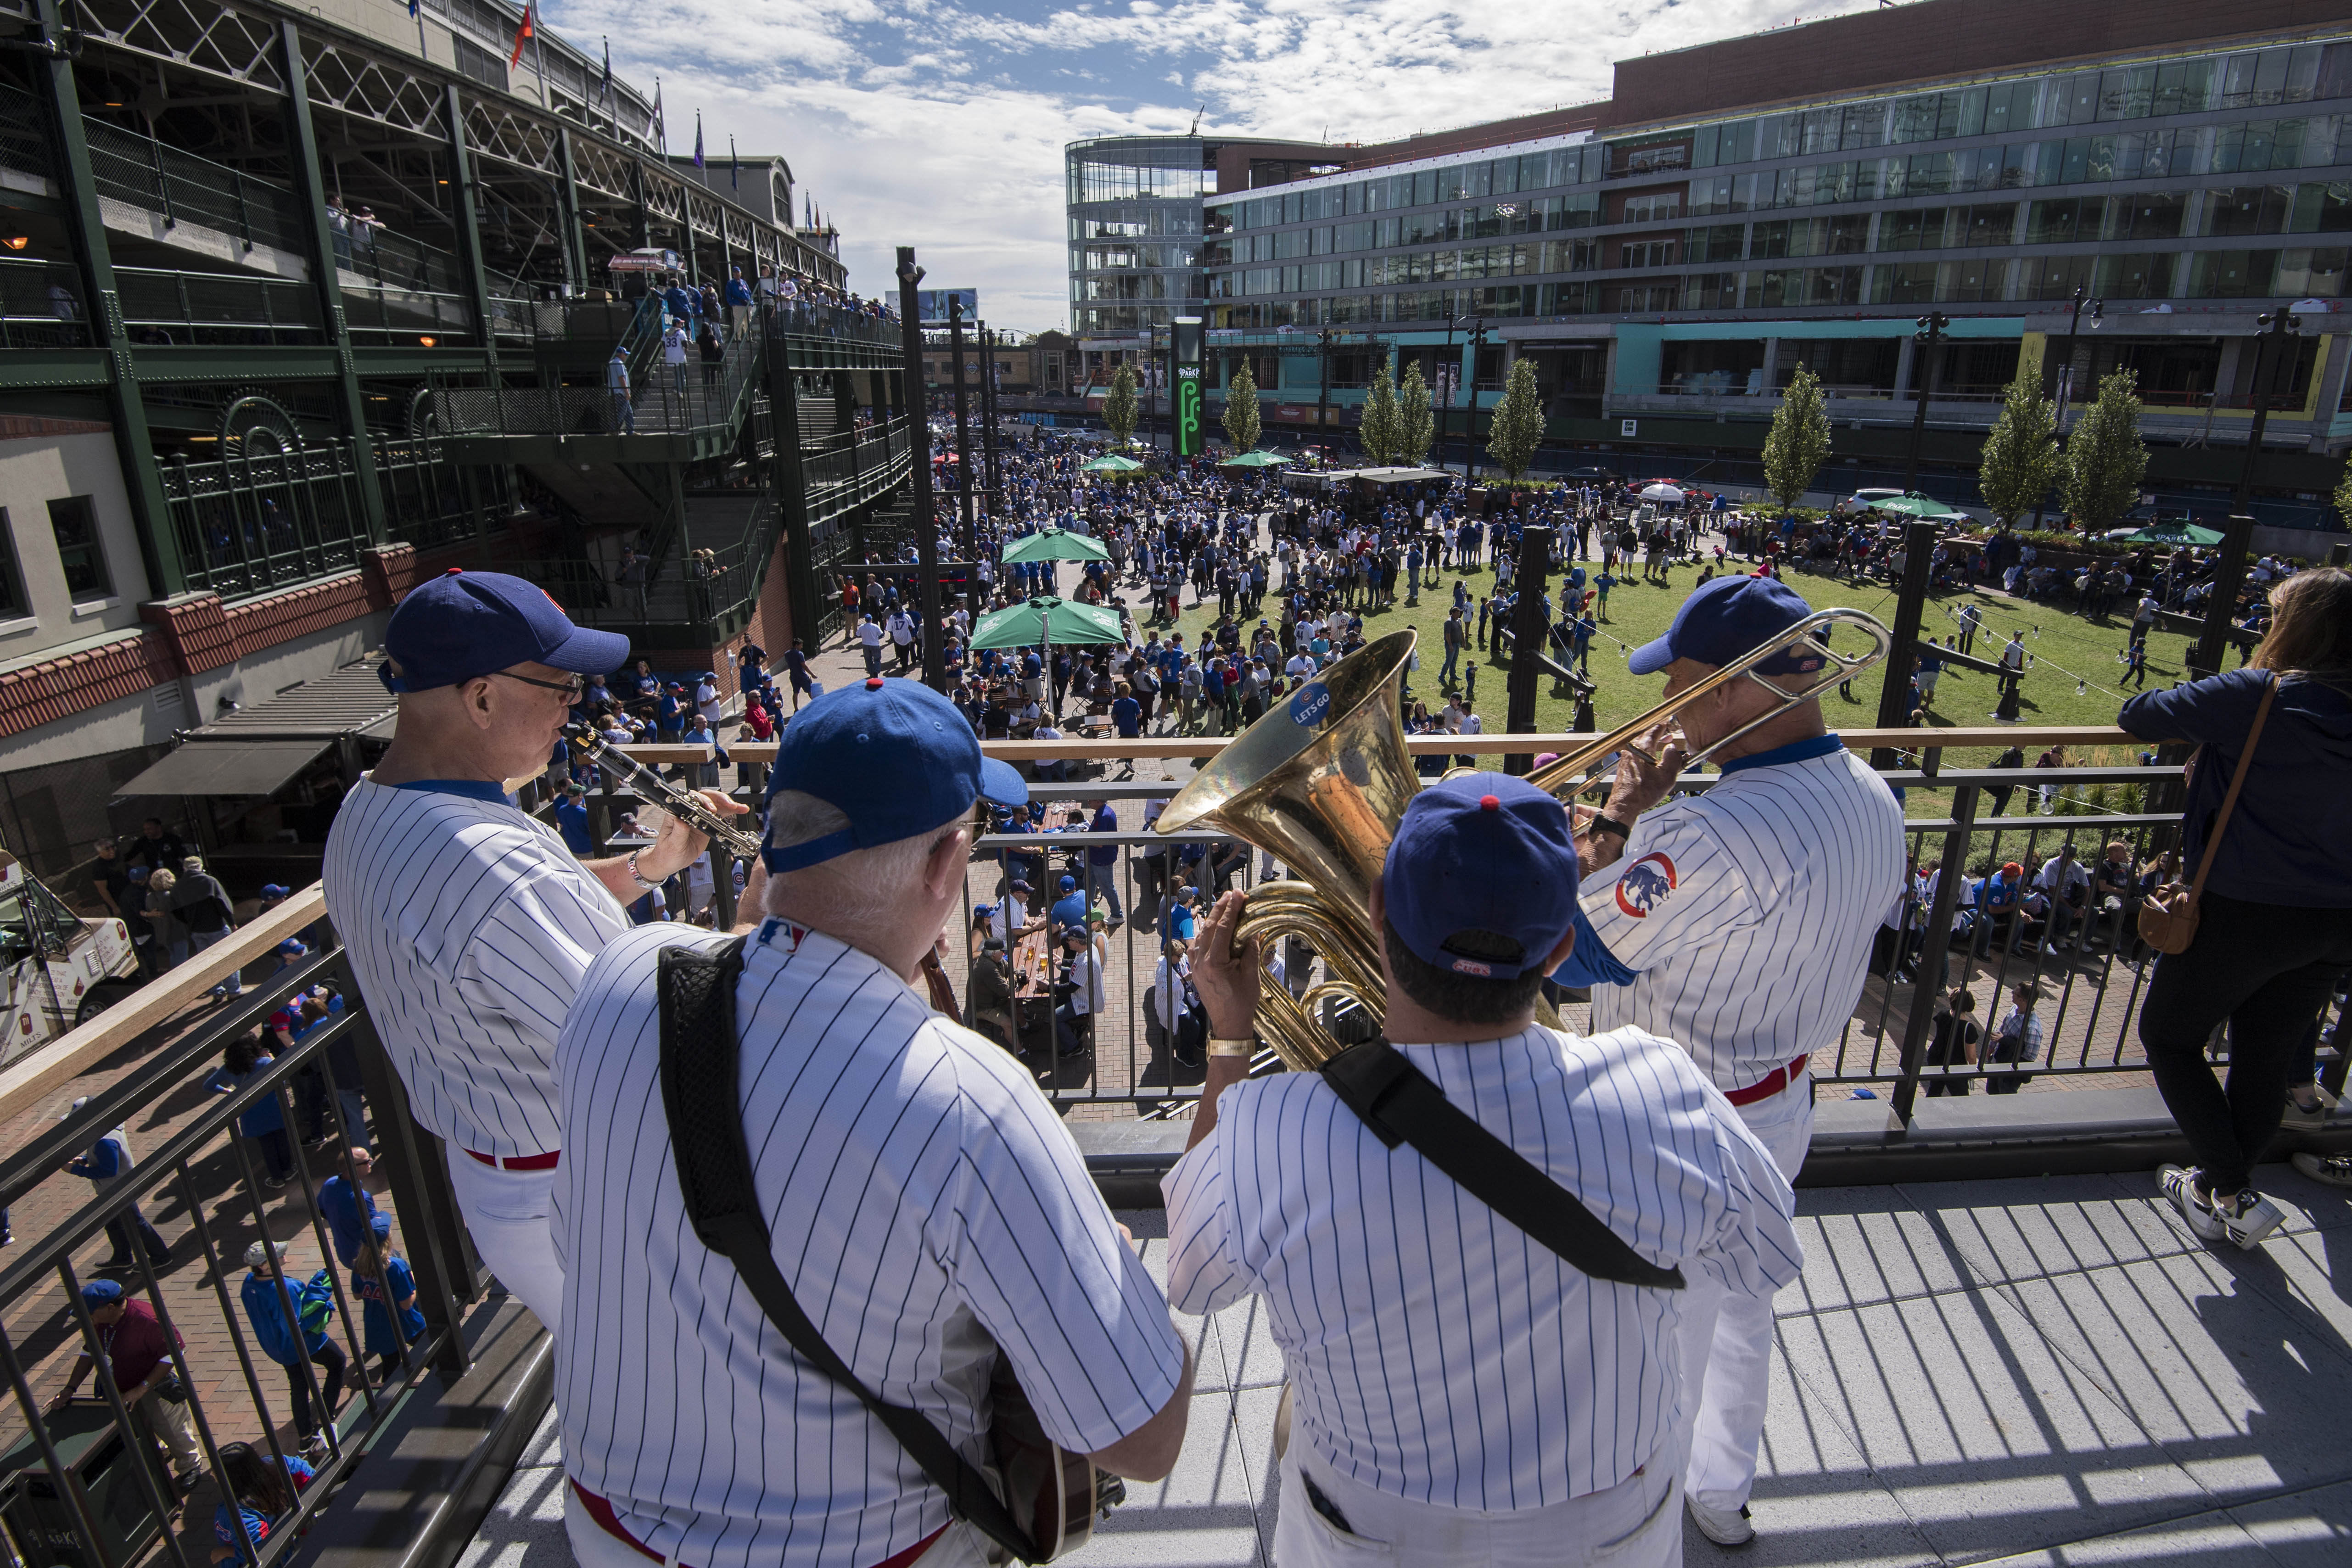 The Park at Wrigley is supposed to be game changer for the neighborhood.